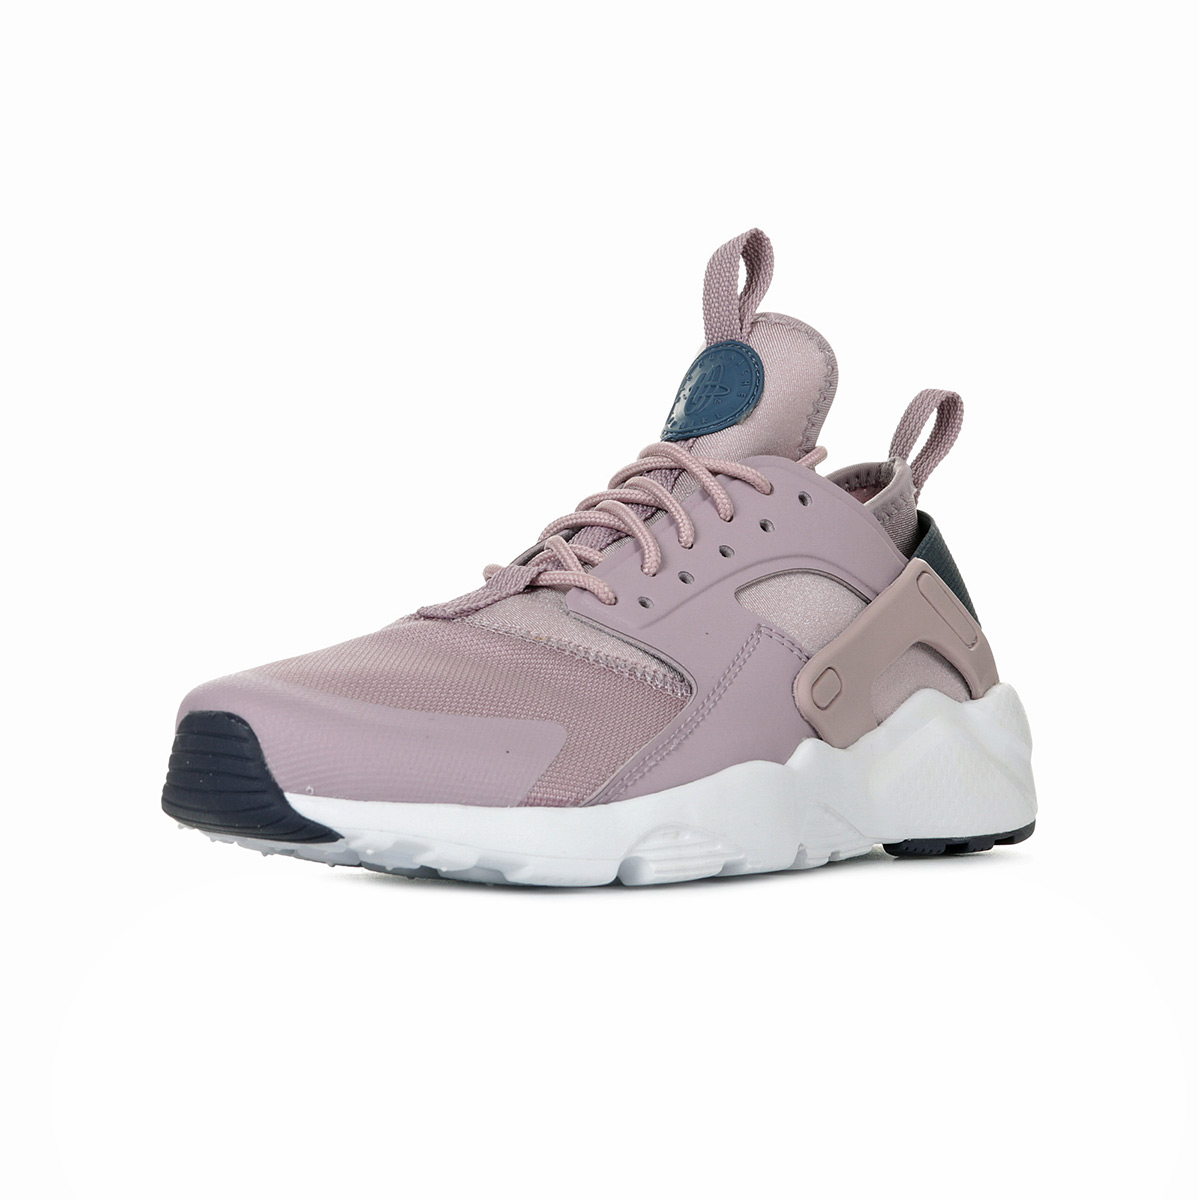 Chaussures Baskets Nike femme Air Huarache Run Ultra GS taille Violet Violette